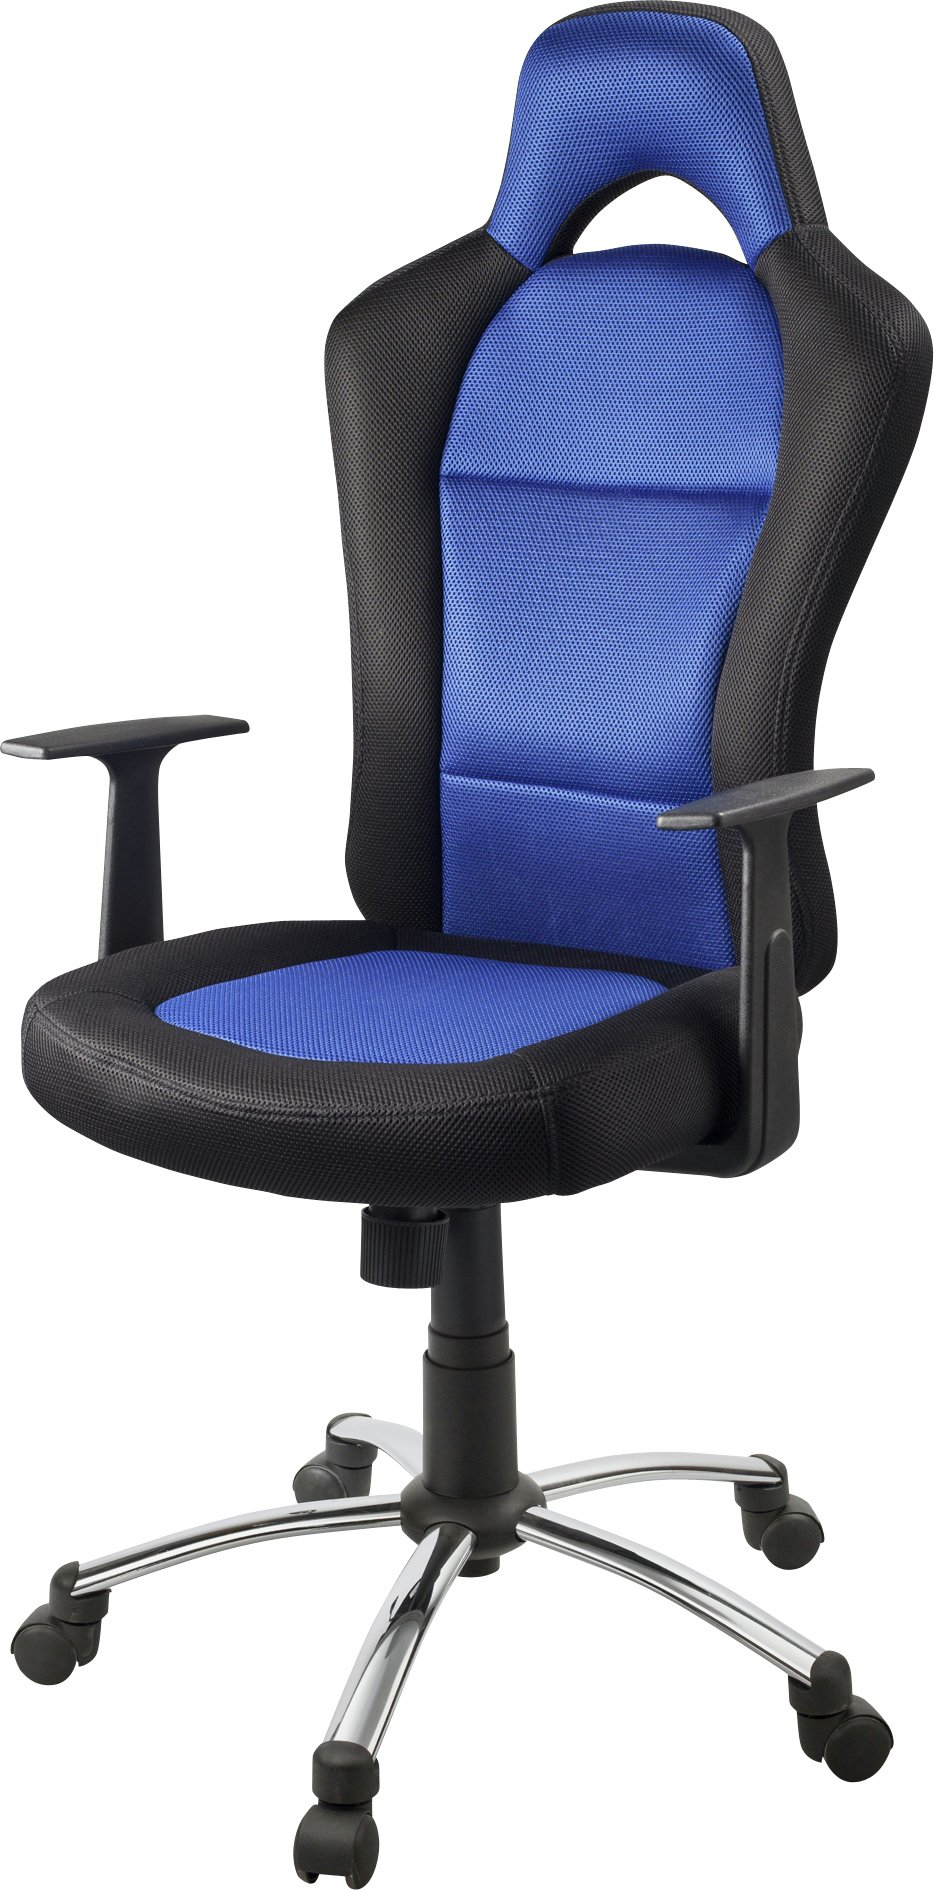 buy home gaming office chair - blue and black at argos.co.uk